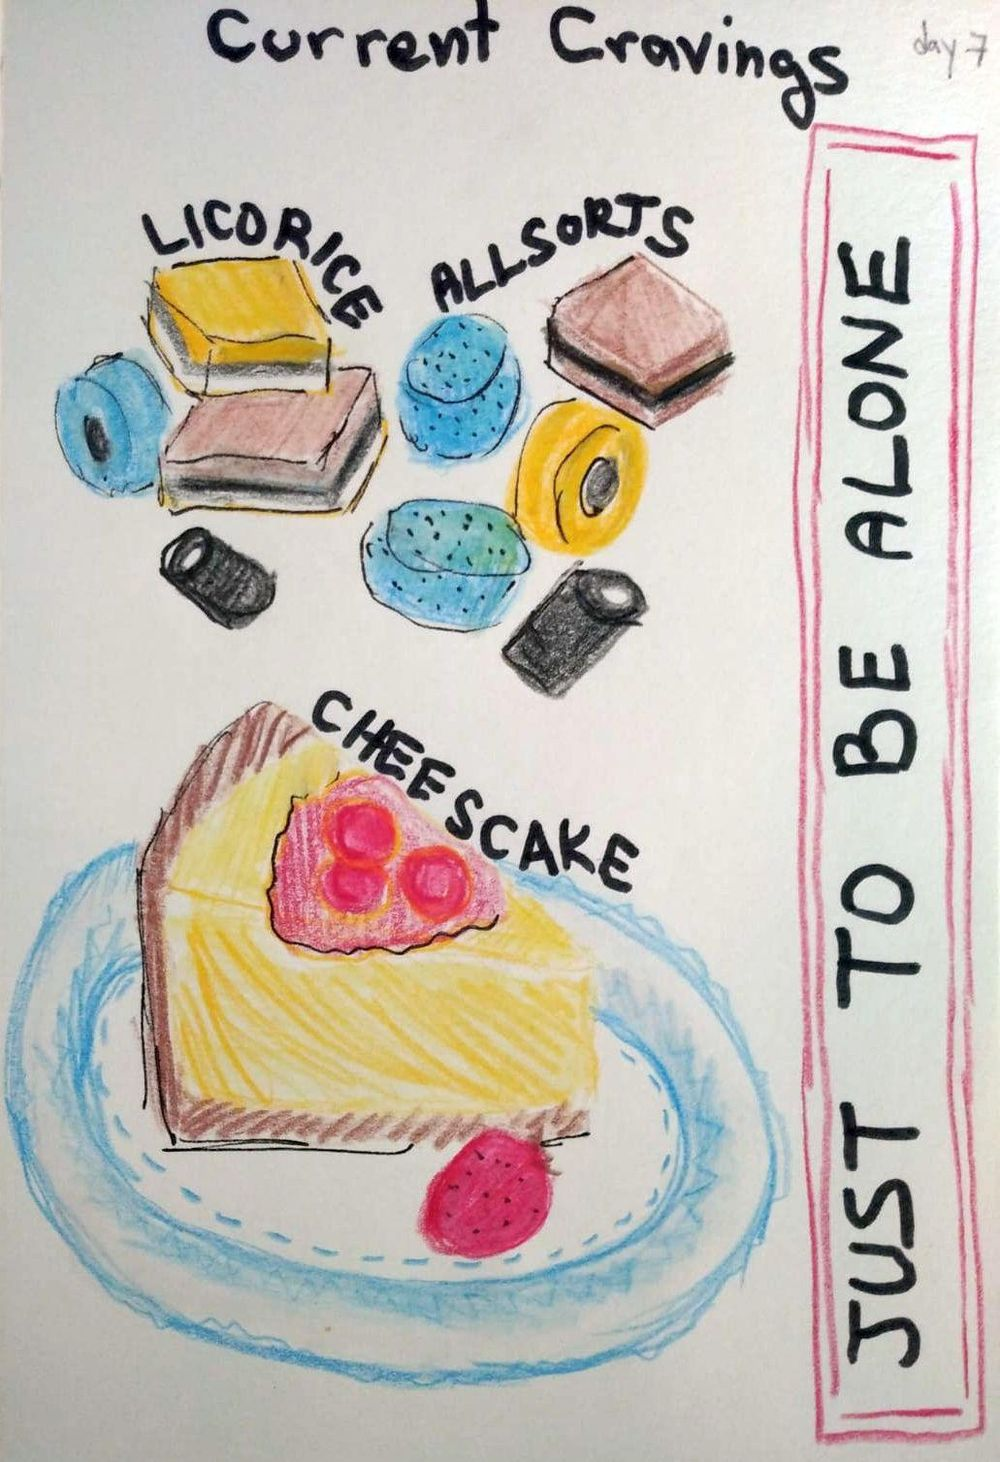 Illustrated Journaling - image 7 - student project